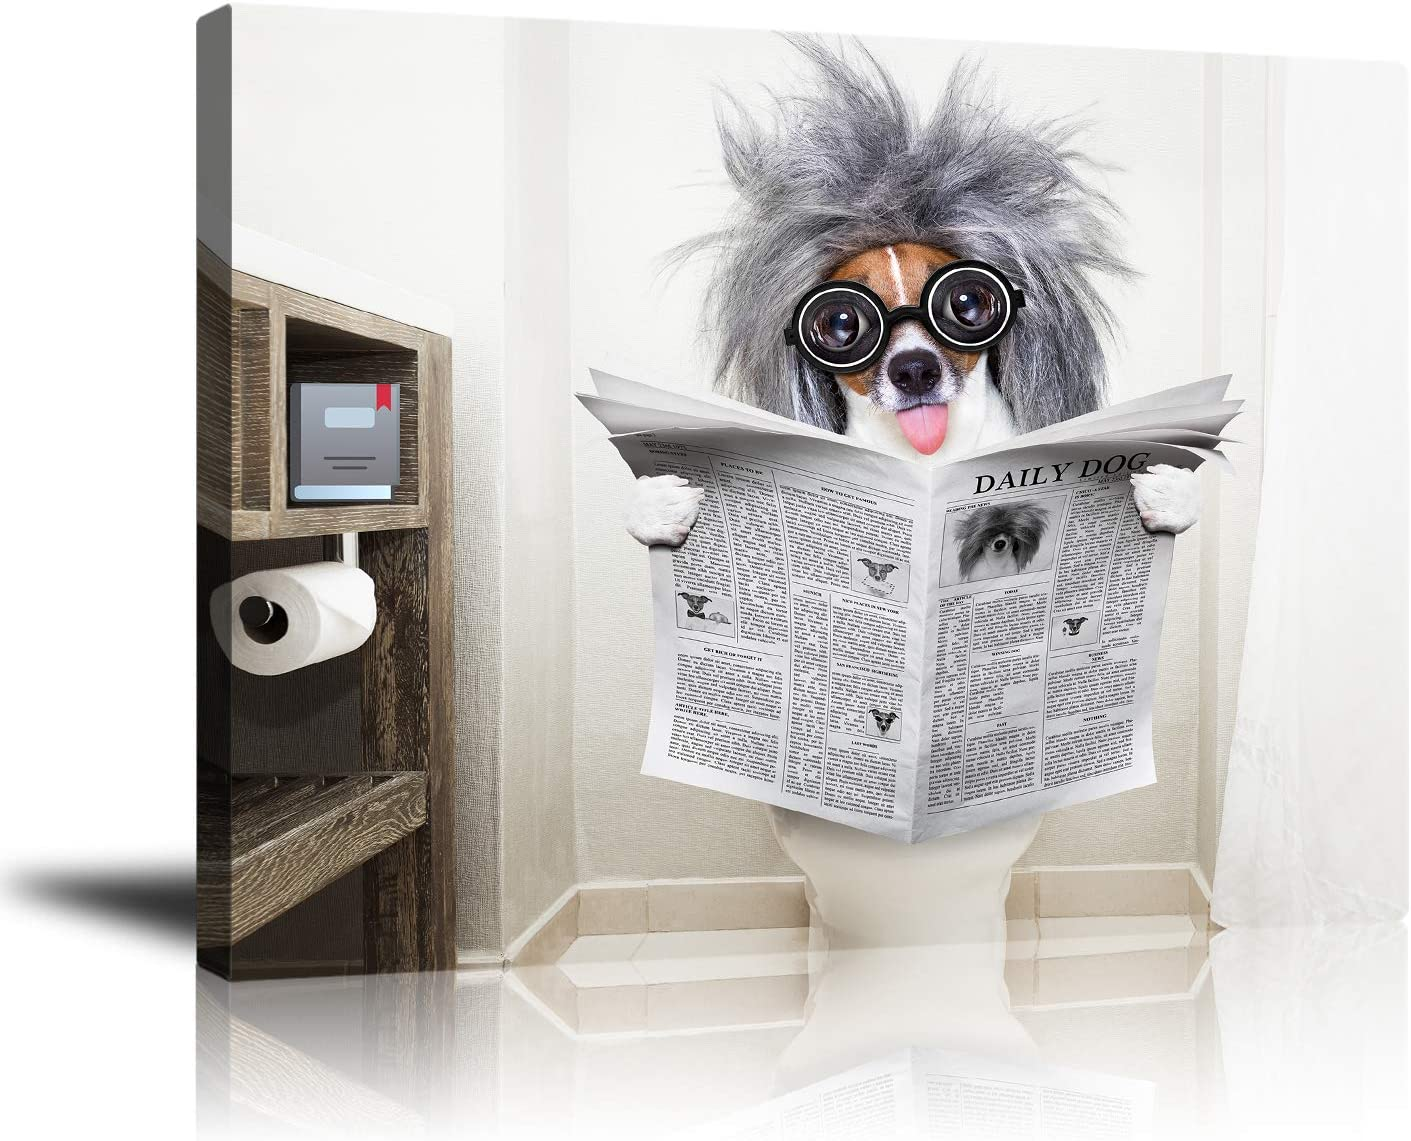 "Abstrsct Pictures Wall Art for Bathroom Decor, Print Funny Dog Reading Newspaper Canvas Wall Posters Painting Artwork Home Decorations Framed for Living Room Bedroom Dining Room 16""X20"" Ready To Hang"